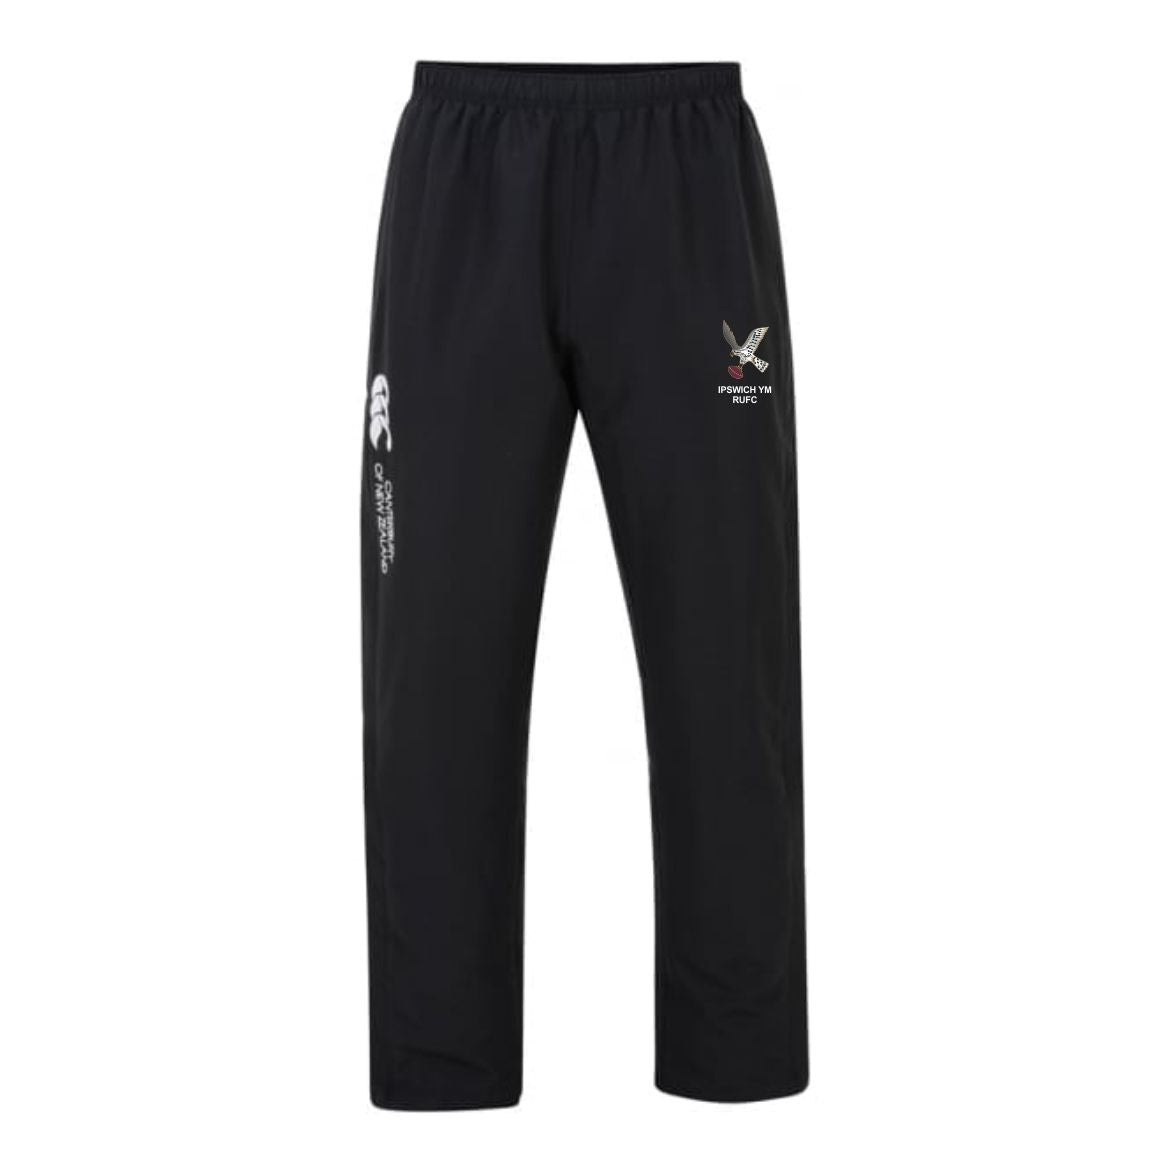 Ipswich YM RUFC CCC Open Hem Stadium Pants men